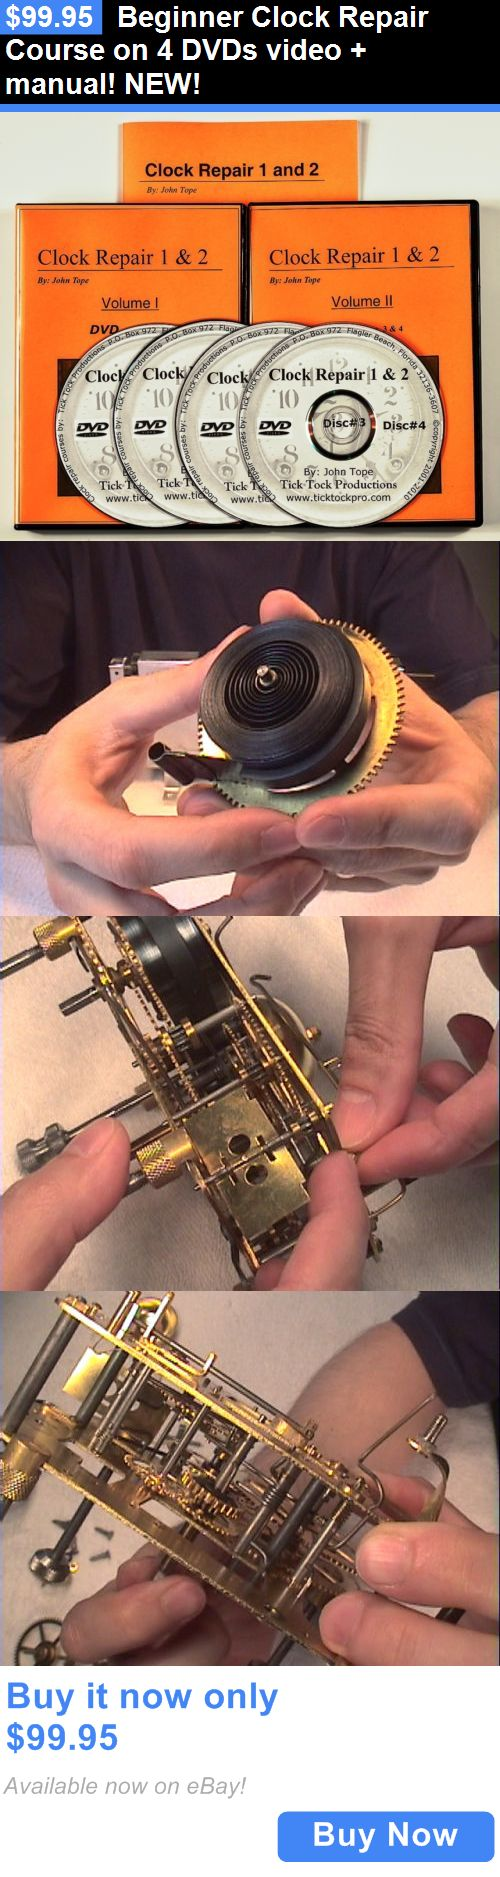 Antiques: Beginner Clock Repair Course On 4 Dvds Video + Manual! New! BUY IT NOW ONLY: $99.95